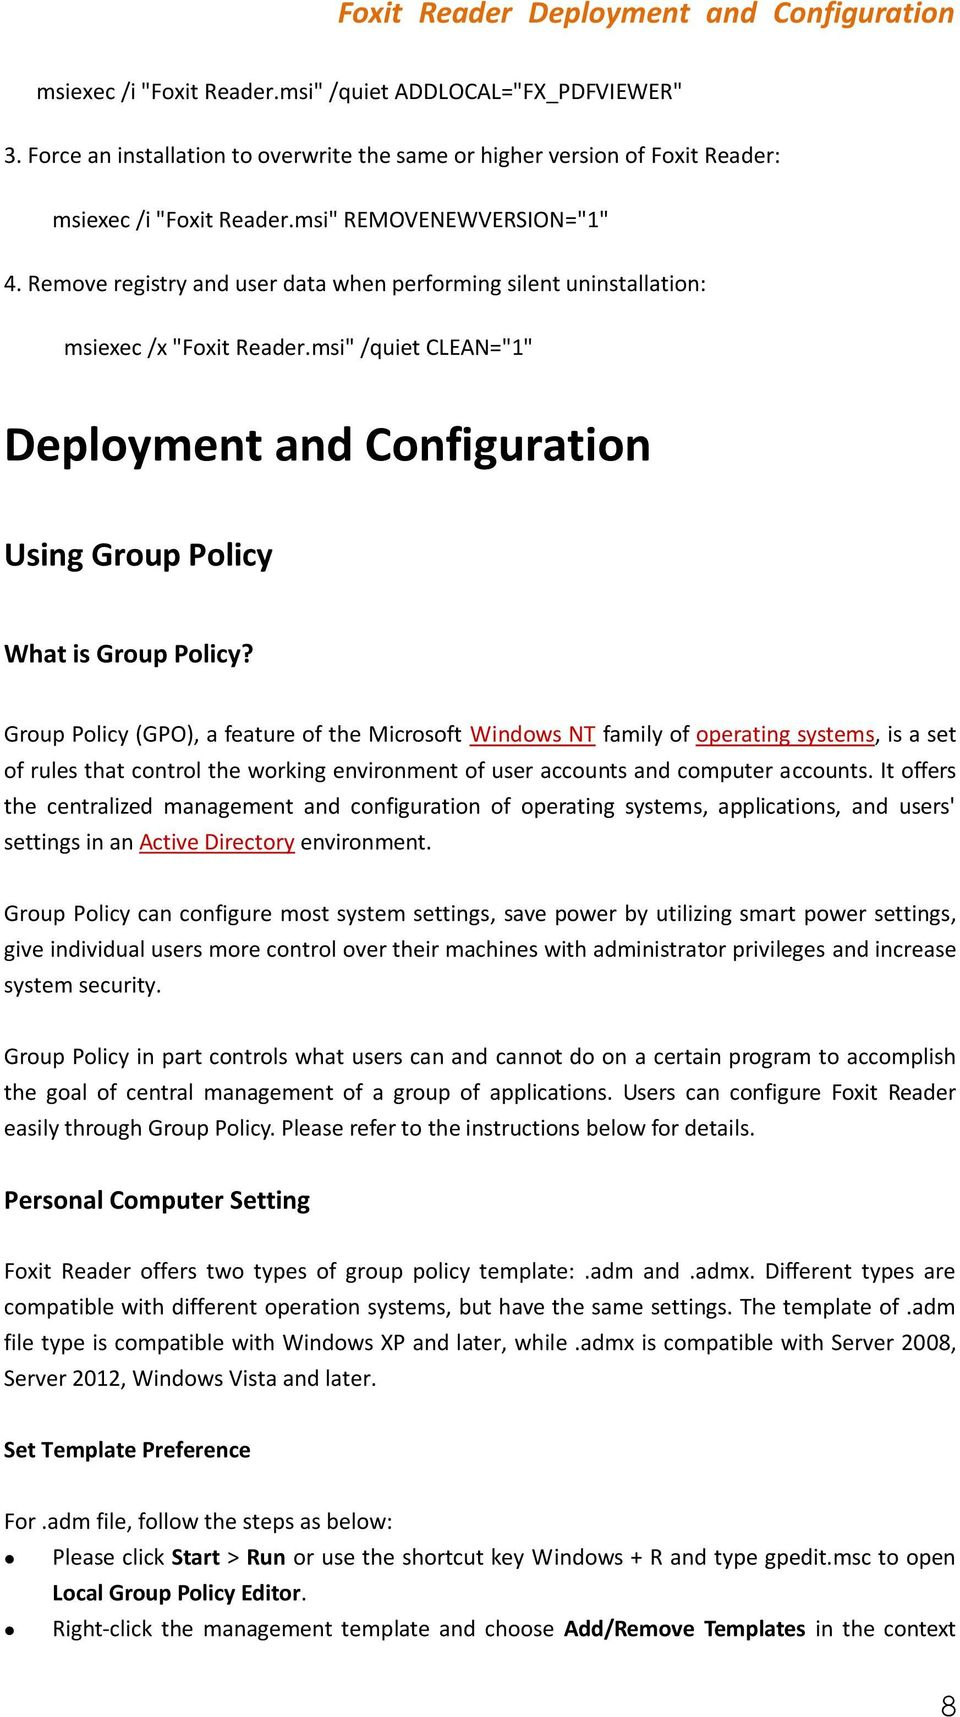 Group Policy (GPO), a feature of the Microsoft Windows NT family of operating systems, is a set of rules that control the working environment of user accounts and computer accounts.